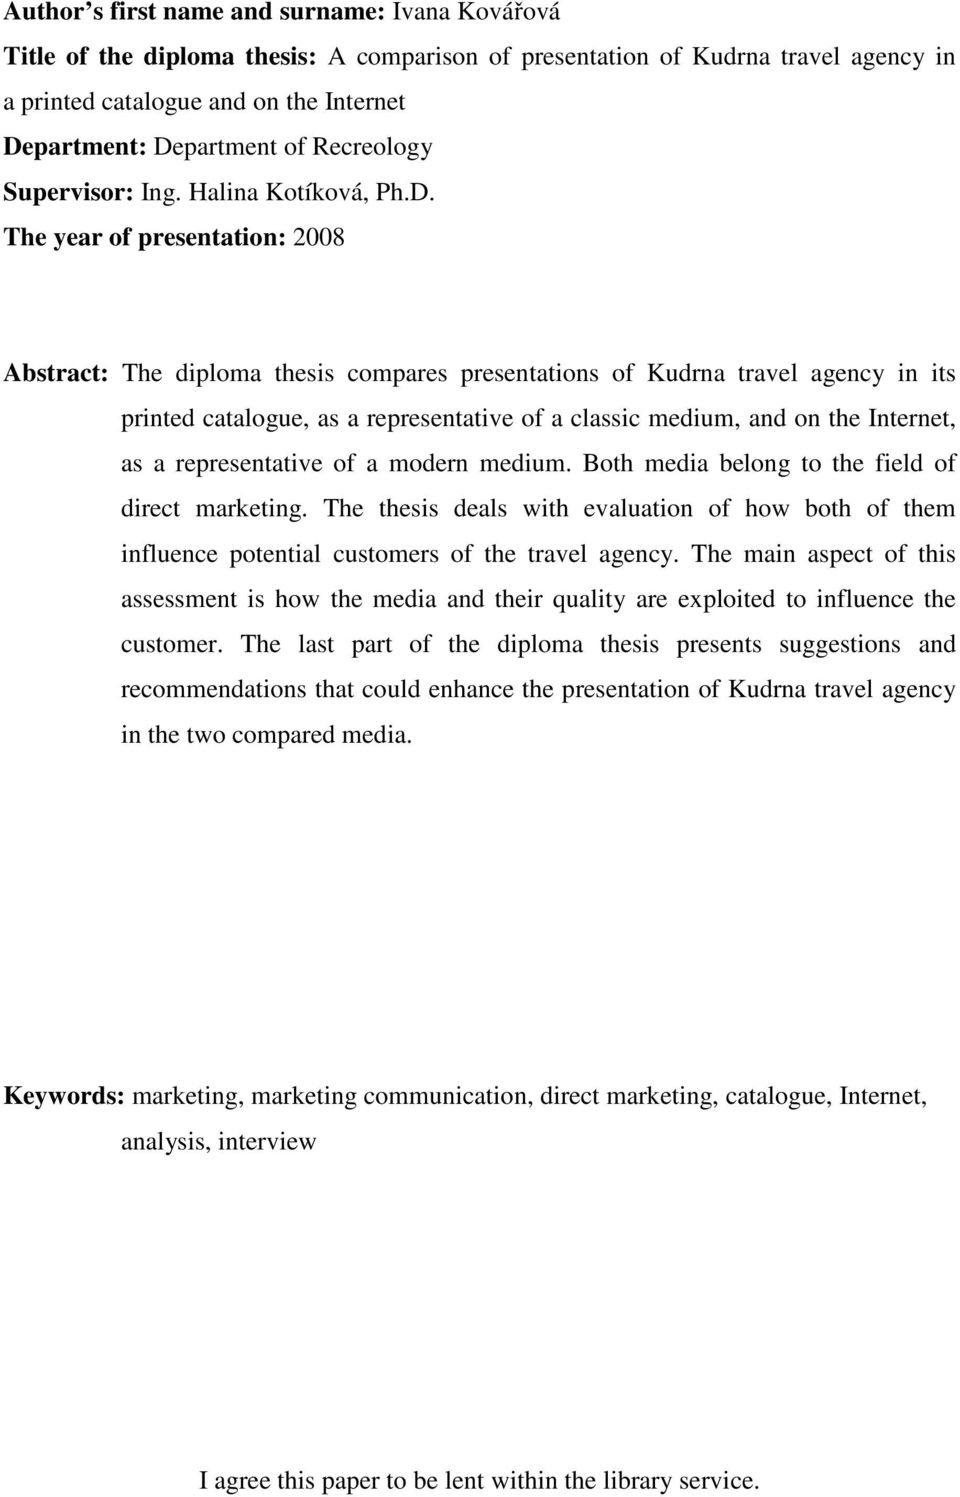 The year of presentation: 2008 Abstract: The diploma thesis compares presentations of Kudrna travel agency in its printed catalogue, as a representative of a classic medium, and on the Internet, as a